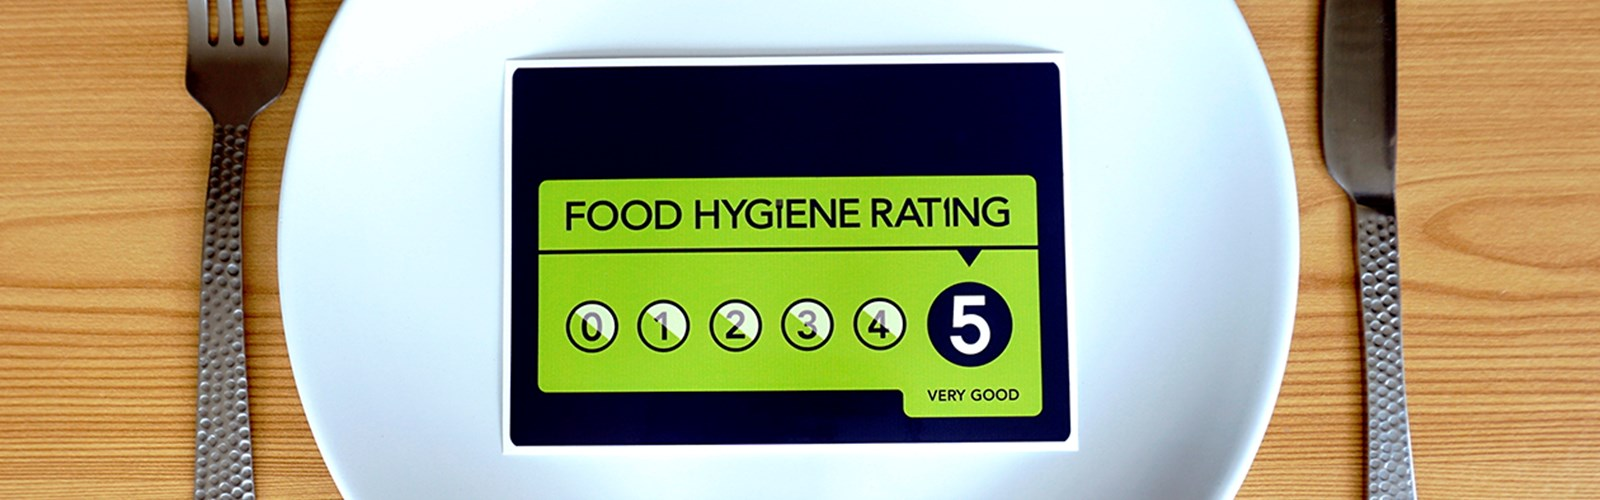 Food Hygiene Rating card on a plate